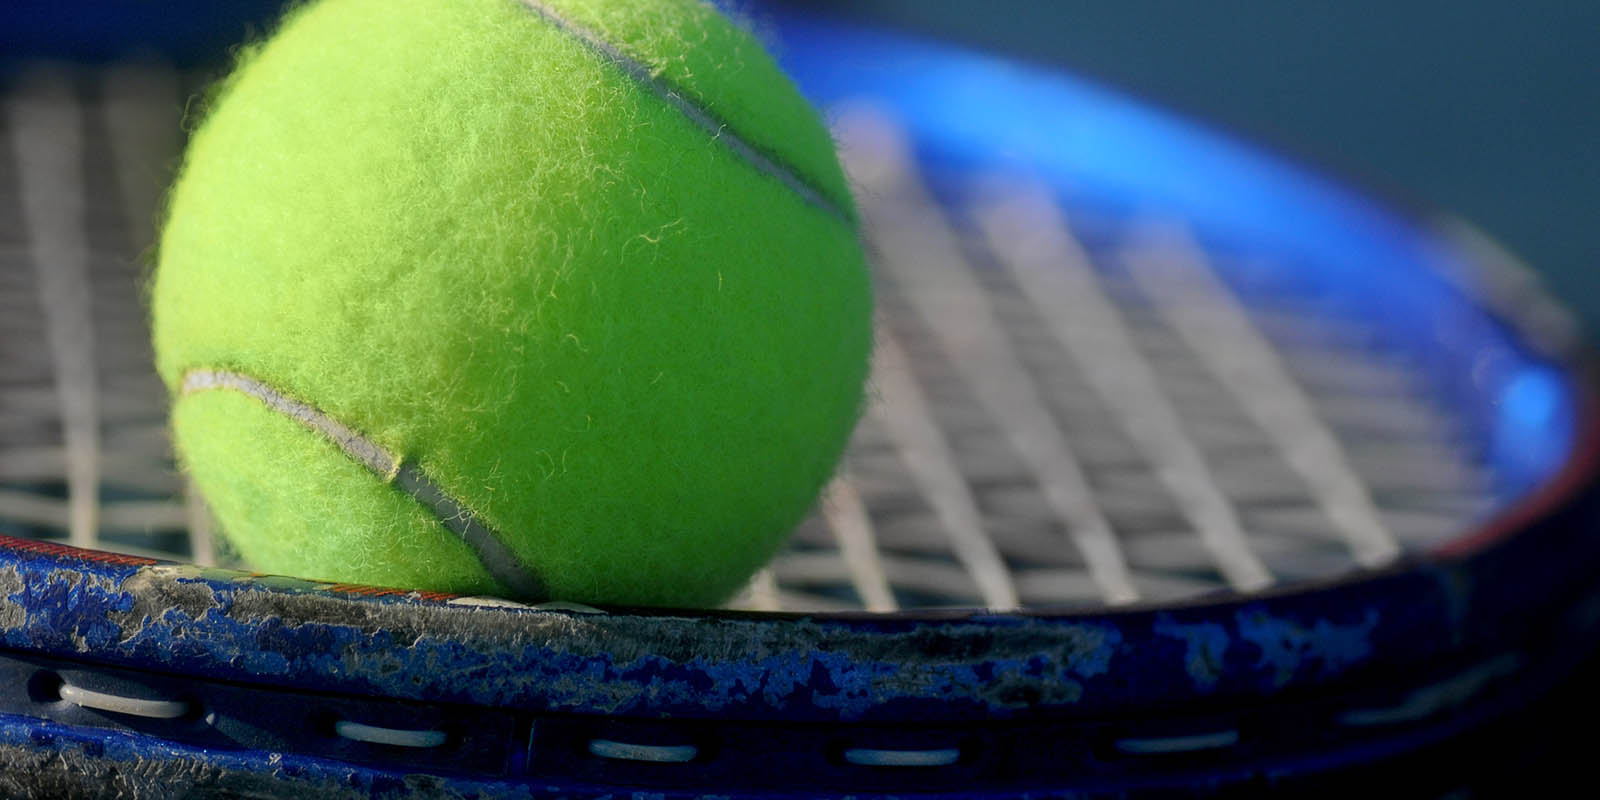 New Tennis Center Opens in Arlington